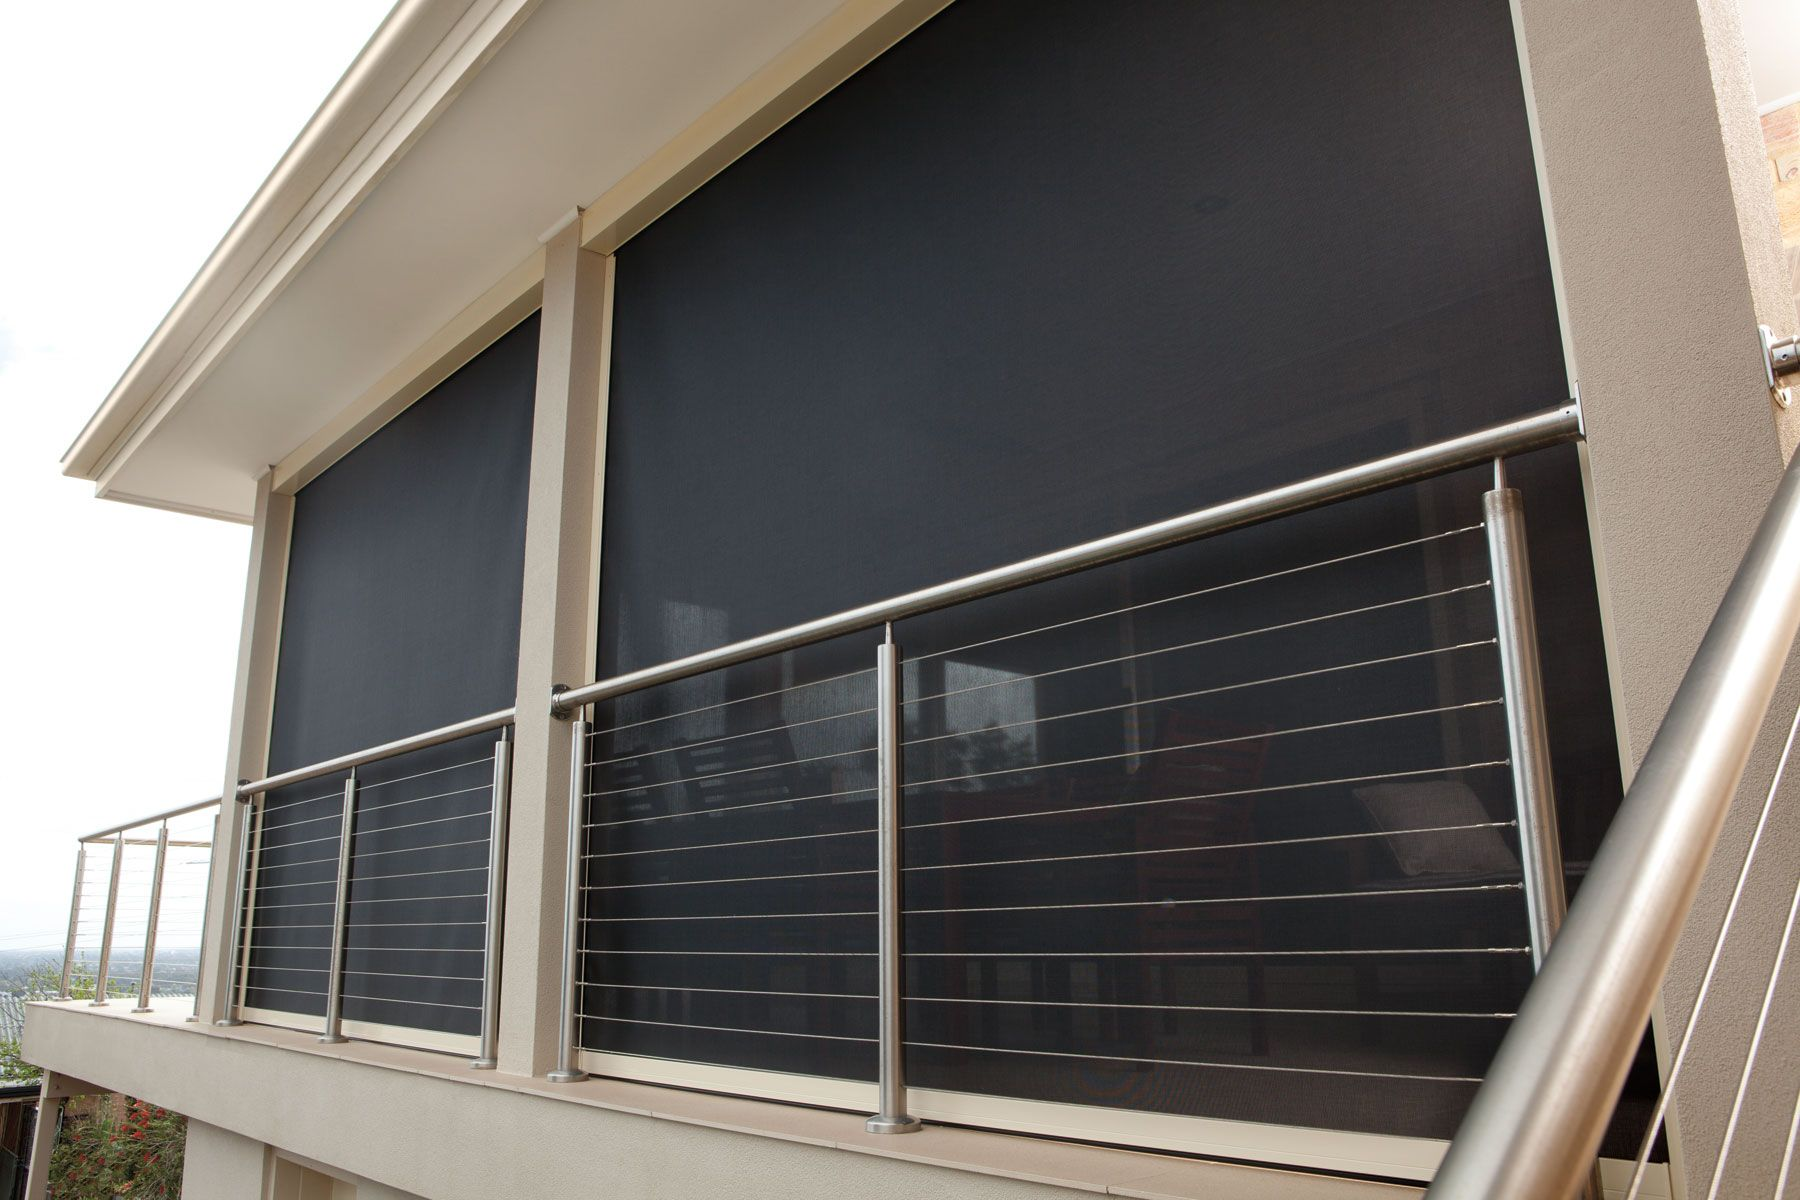 Outdoor Sun Blinds Ambient Blinds For Patios Patio Blinds Patio Awnings